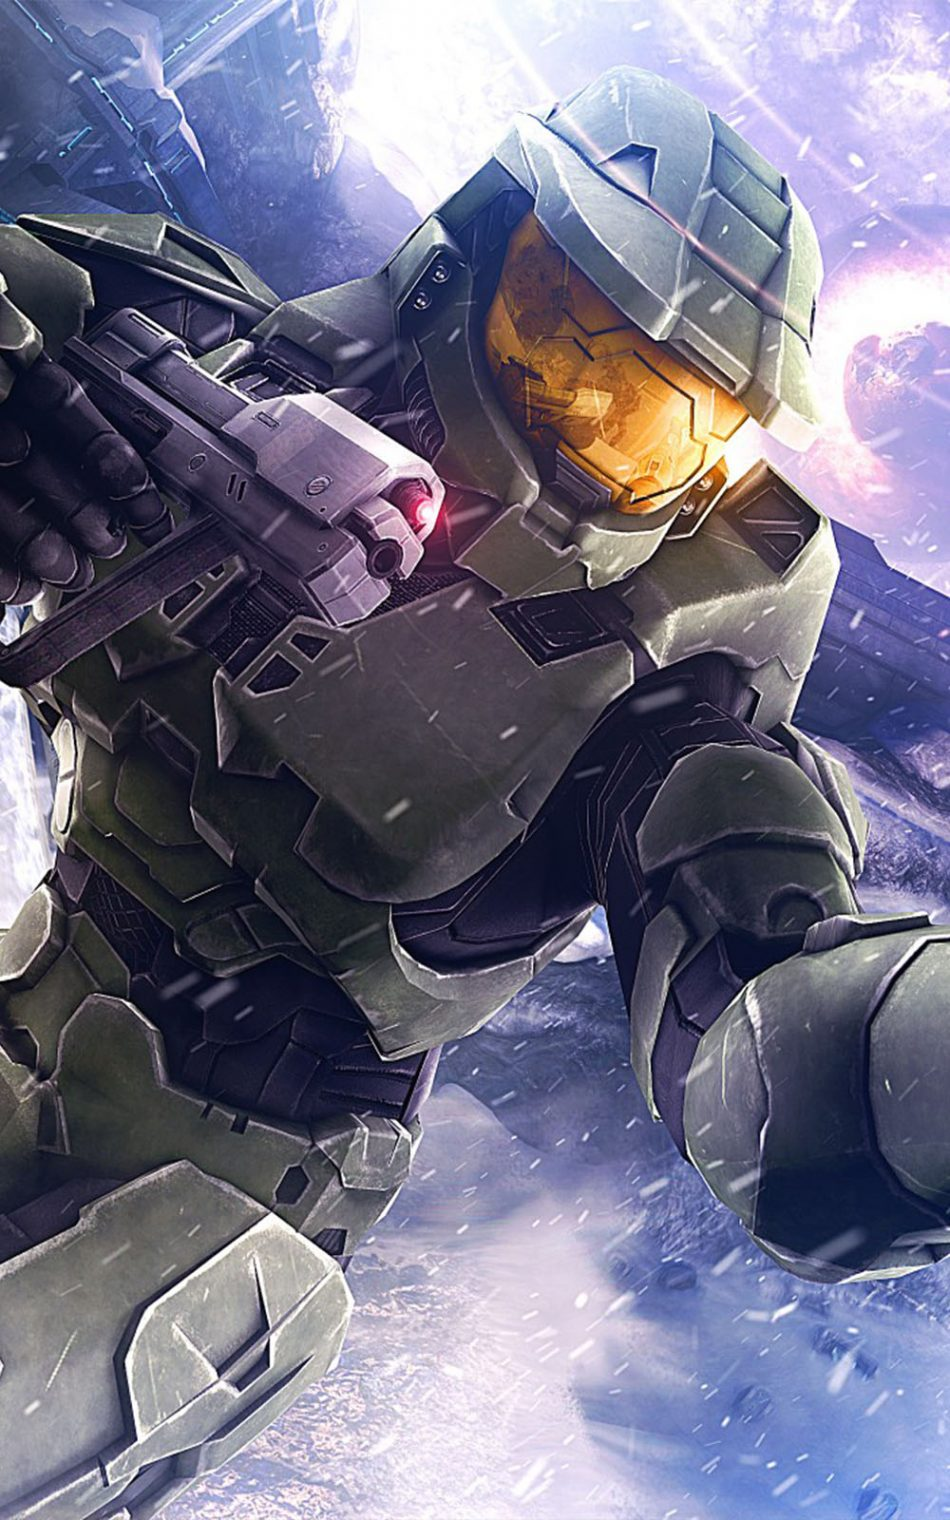 master chief halo 3 - download free pure 4k ultra hd mobile wallpaper